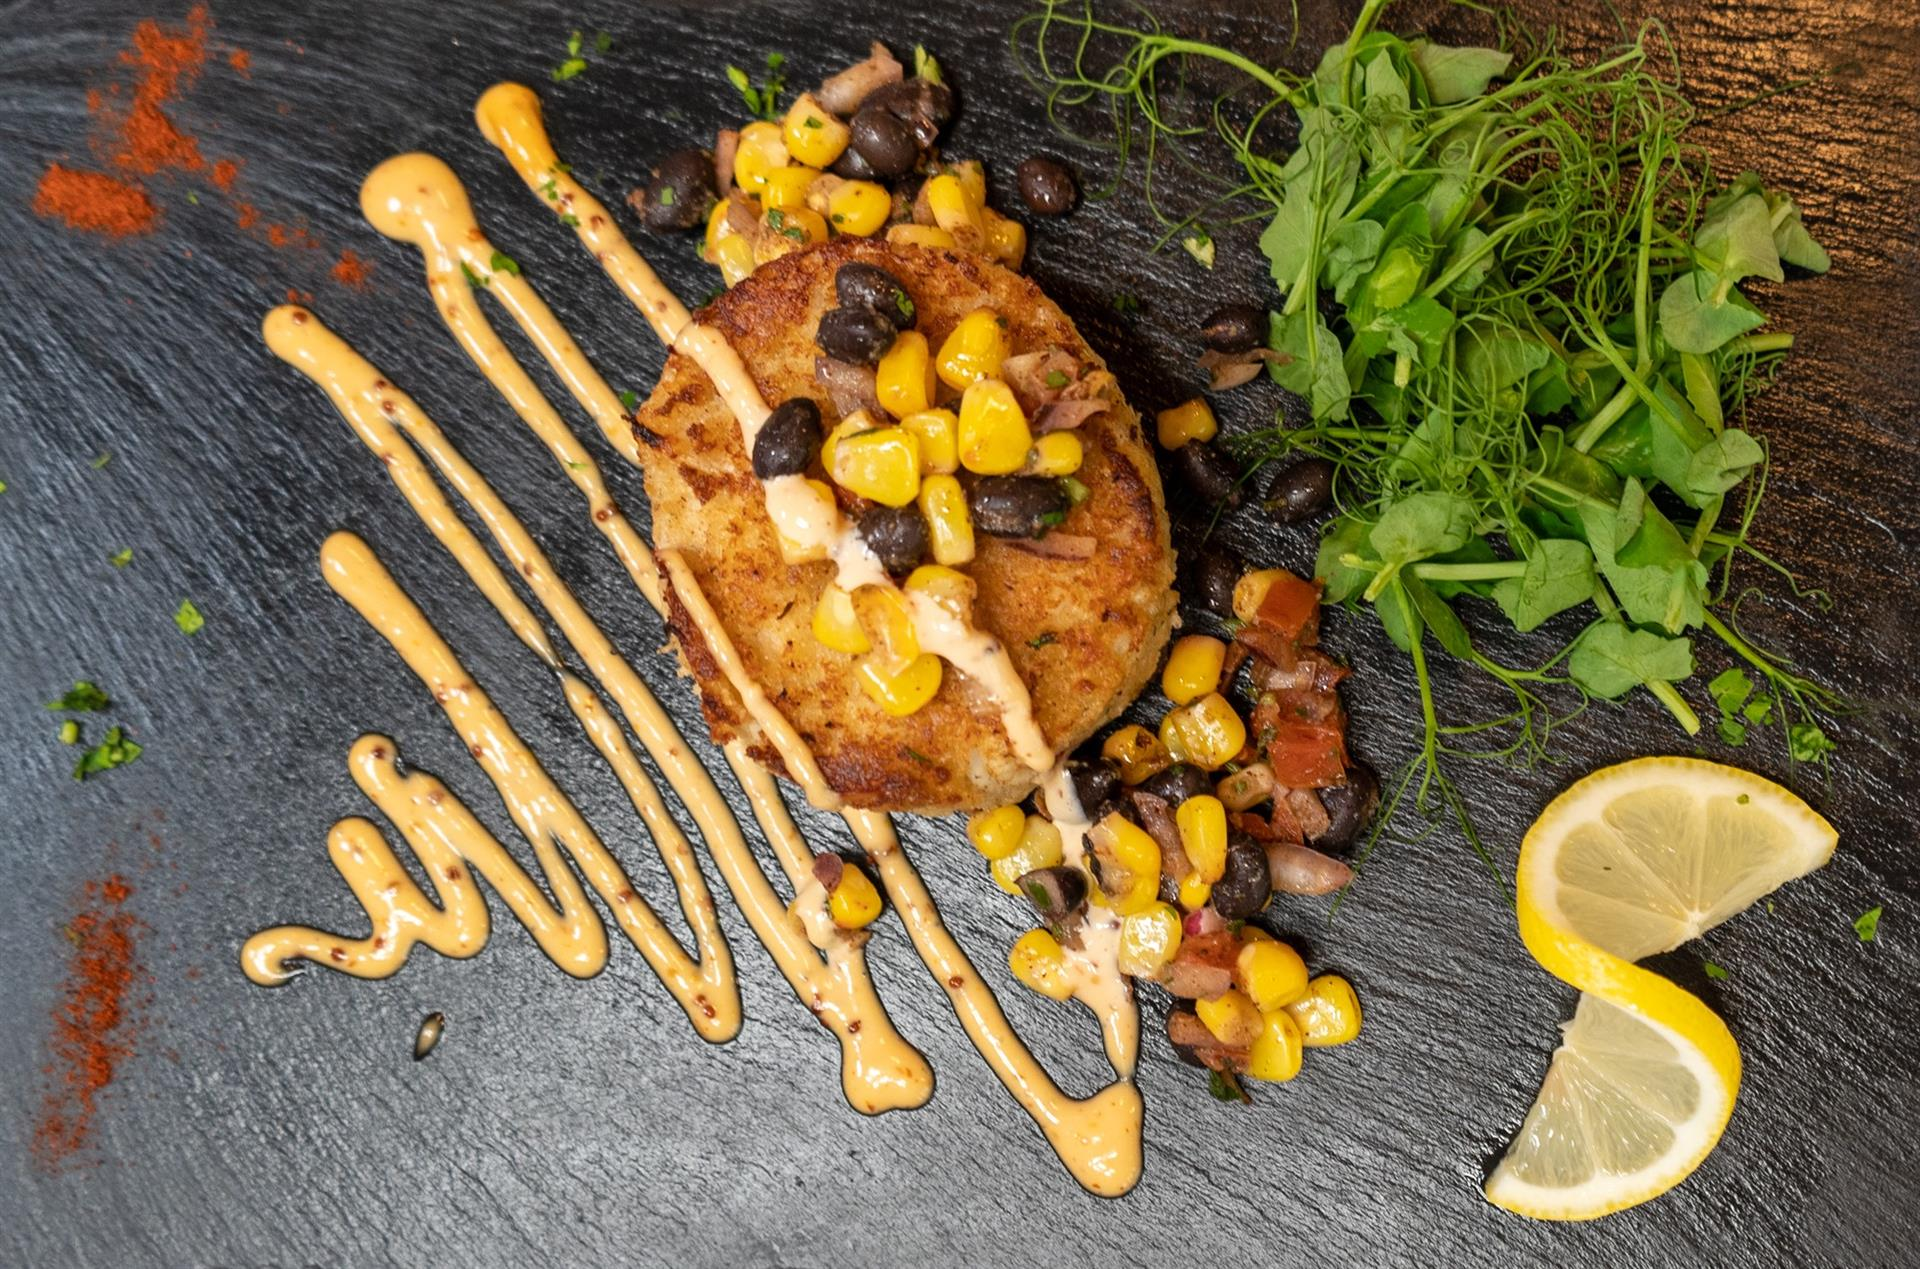 Jumbo Lump Crab Cake: Jumbo lump crab, roasted corn & black bean salsa with remoulade sauce